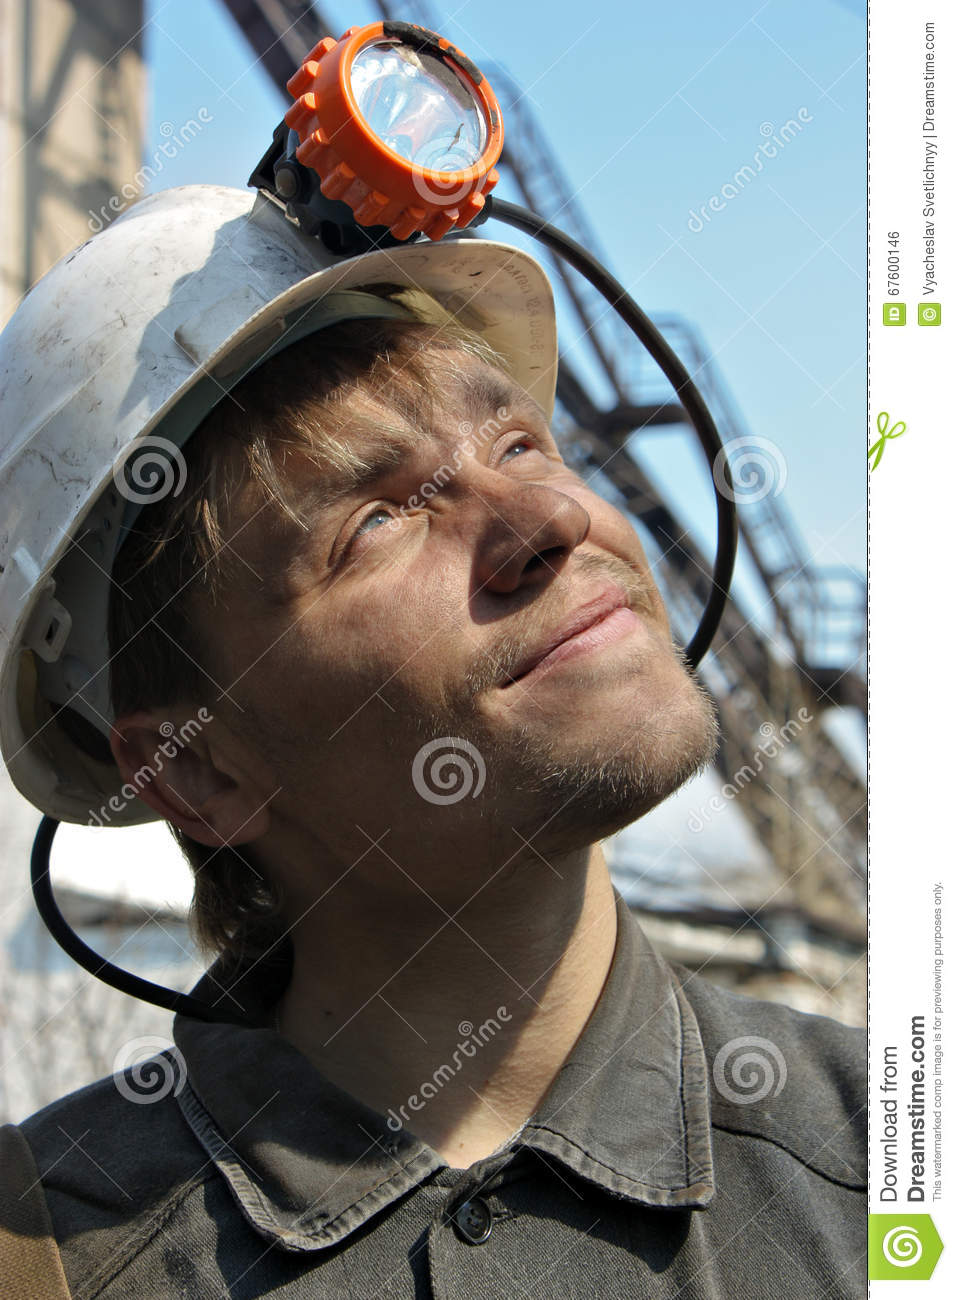 le jeune casque de mineur dans un blanc photo stock image 67600146. Black Bedroom Furniture Sets. Home Design Ideas